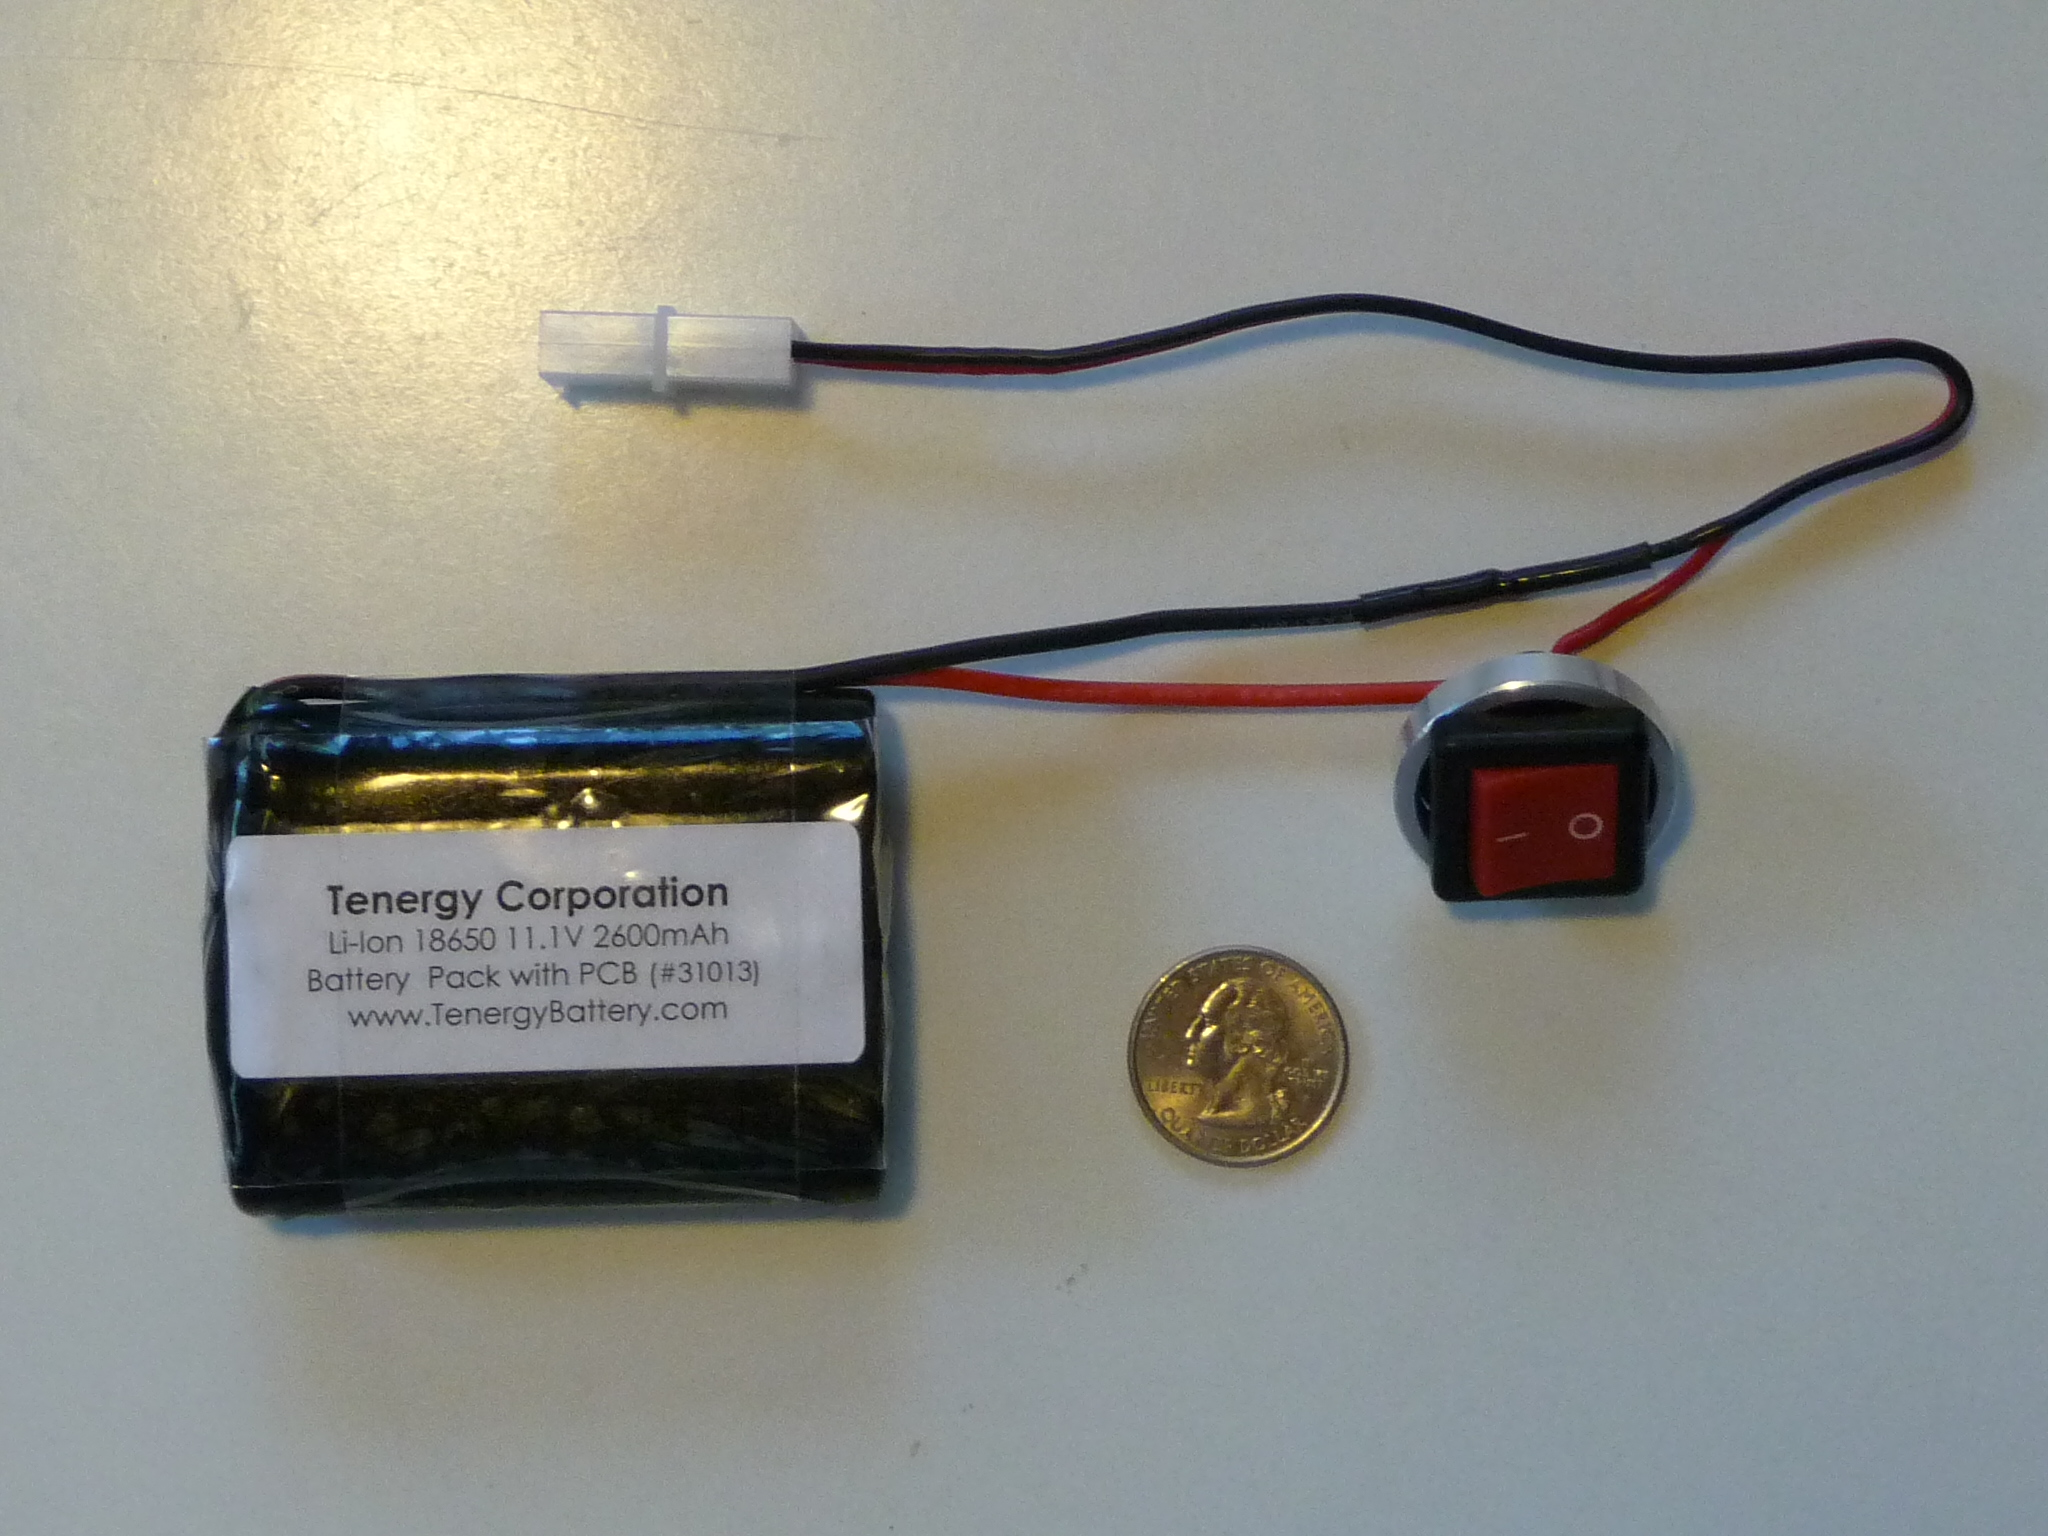 Picture of Solder, and Charge the Battery